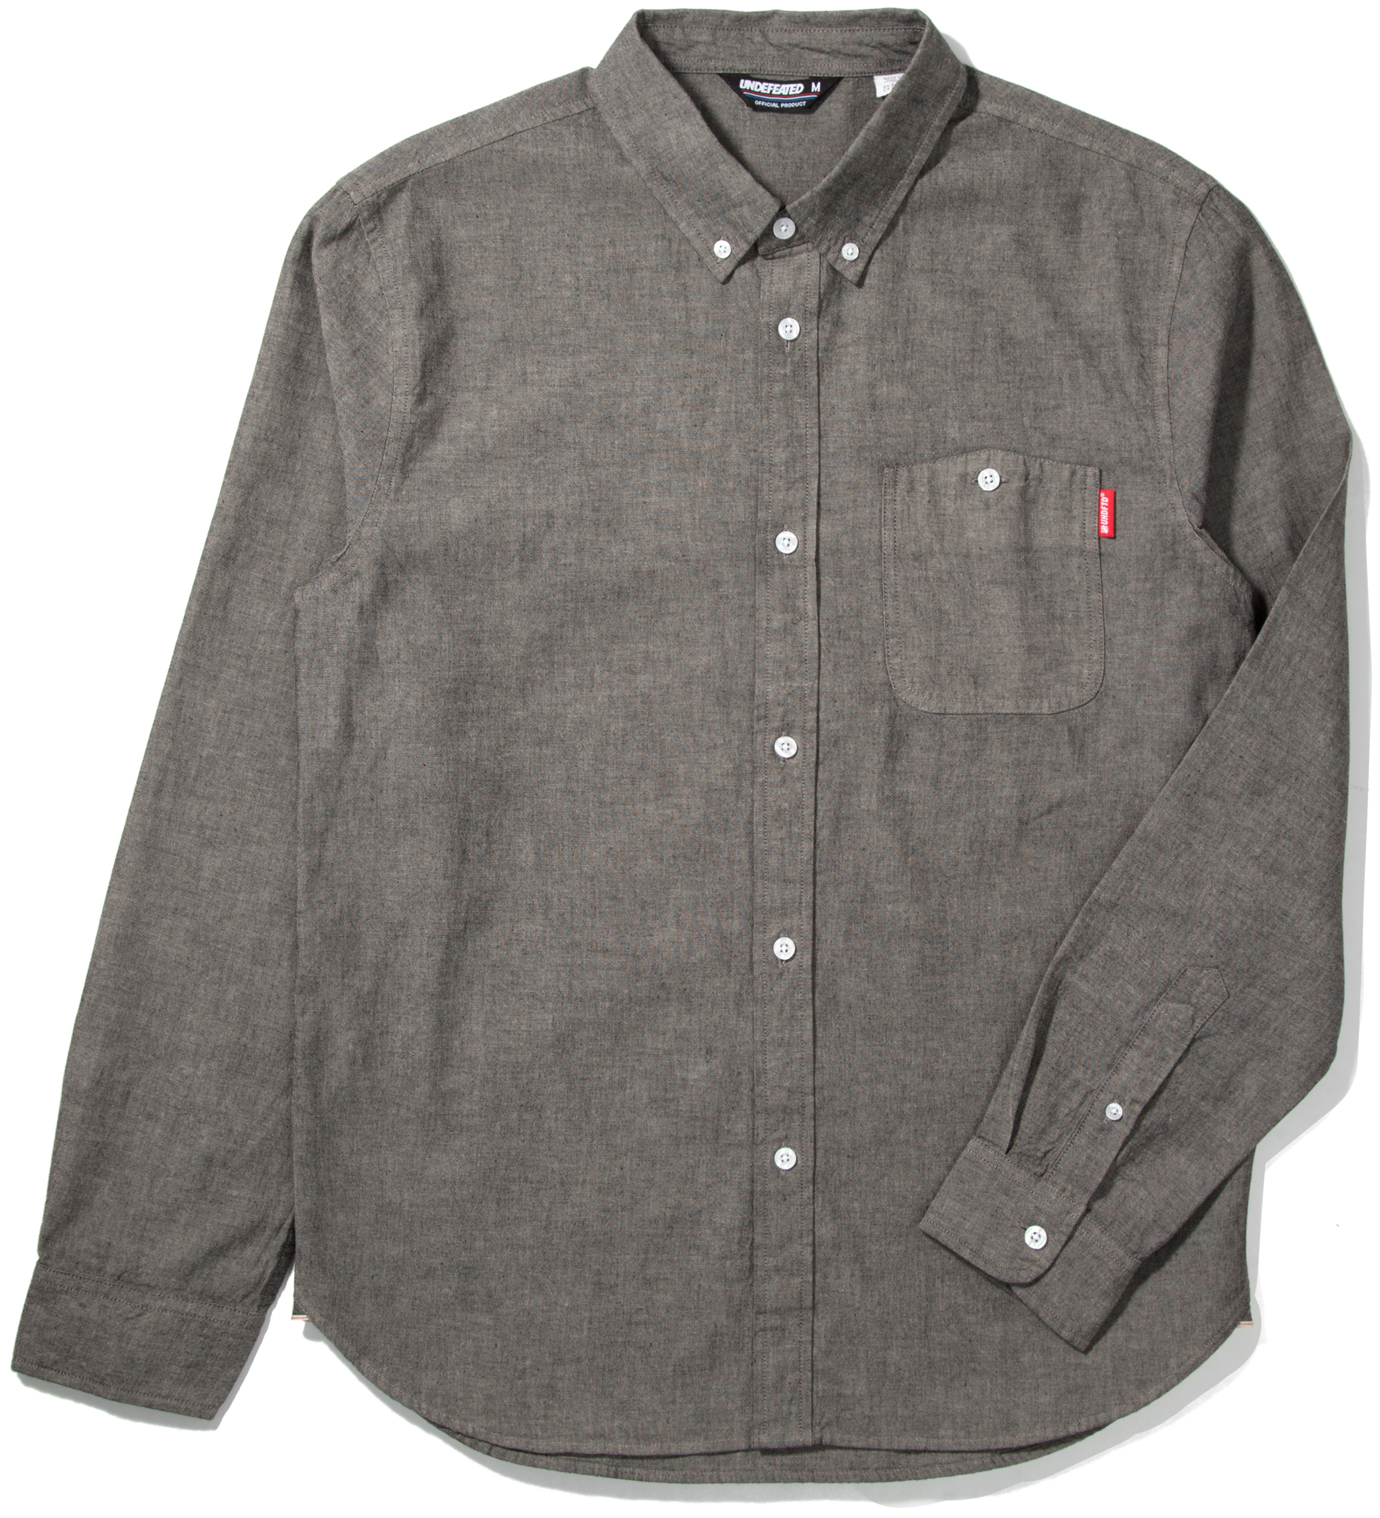 UNDEFEATED Grey RPG Chambray Shirt